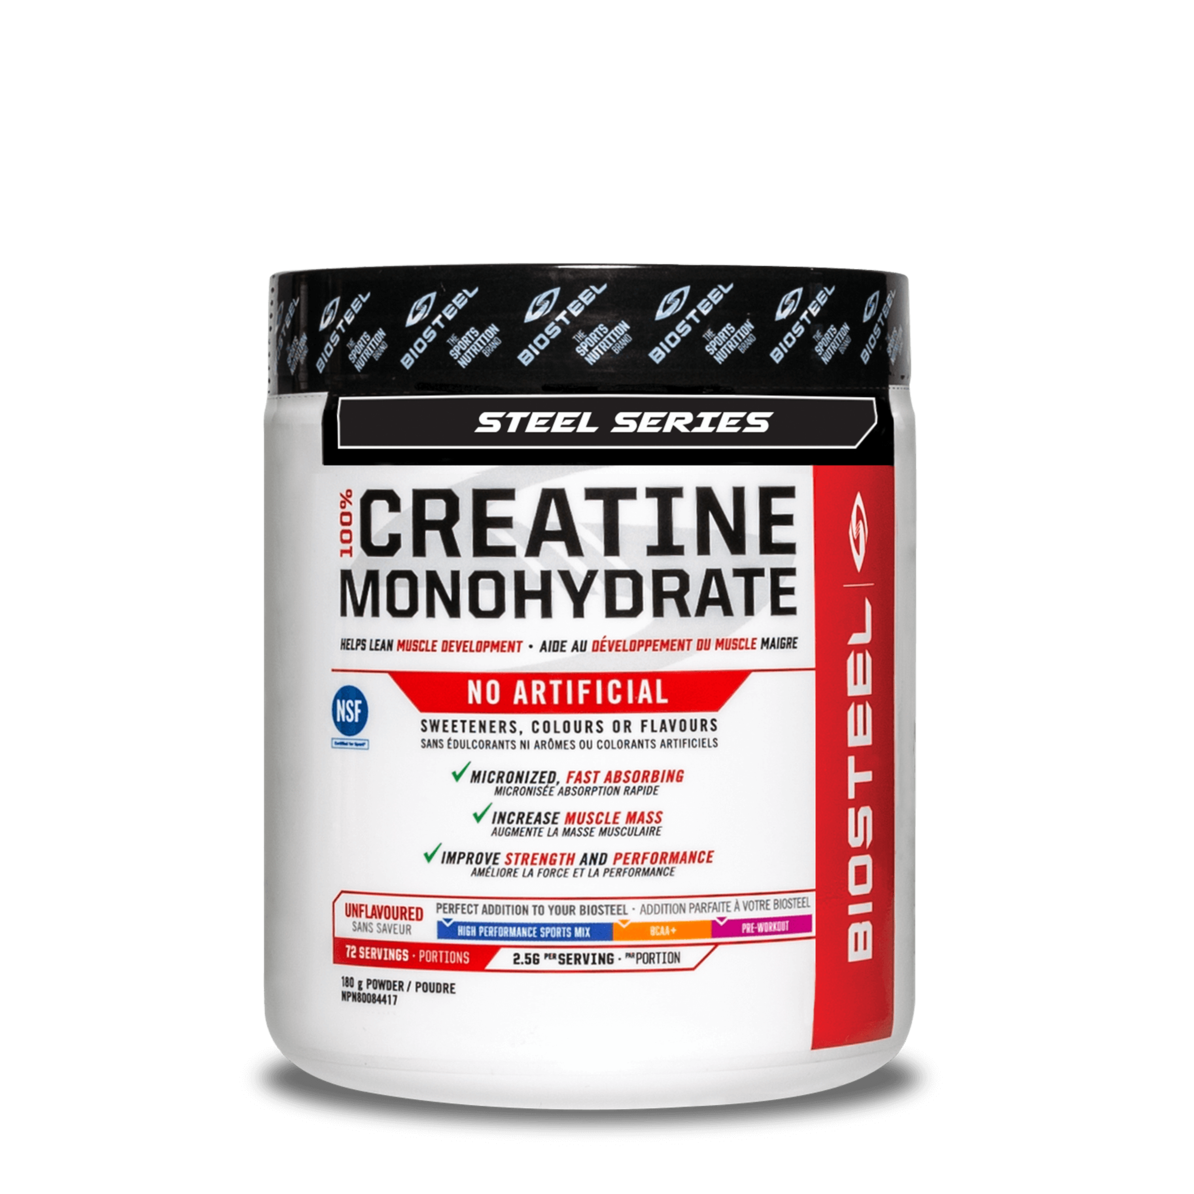 SteelSeries_2000x2000_0000_Creatine_1194x.png